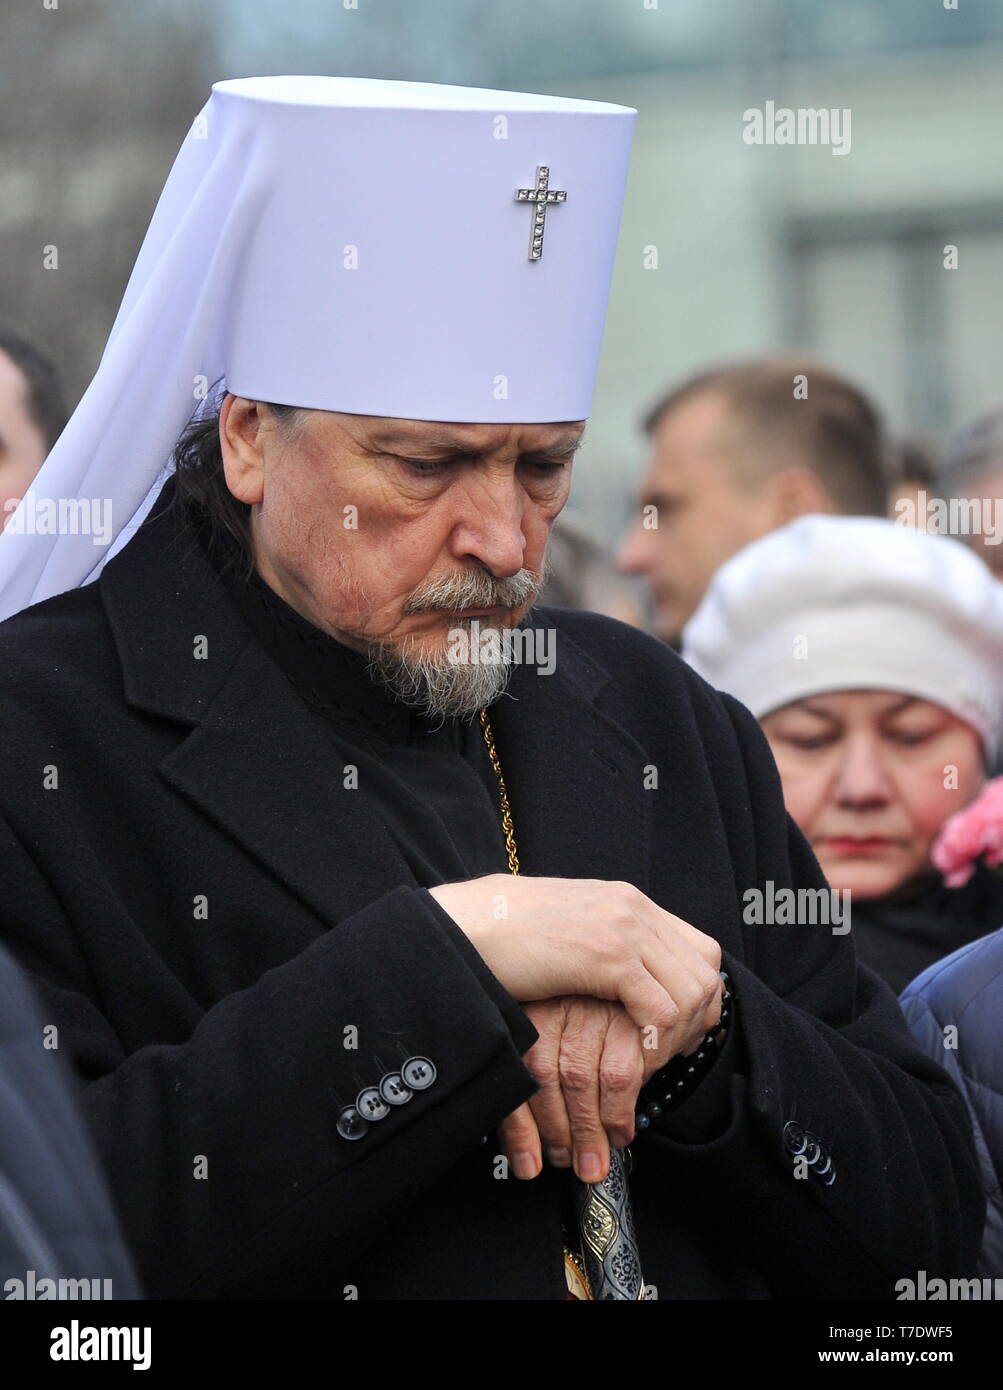 MURMANSK, RUSSIA - MAY 6, 2019: Metropolitan Mitrofan of Murmansk and Monchegorsk lays flowers at a monument to the intervention victims in memory of the victims of an aircraft accident at Moscow's Sheremetyevo Airport. An Aeroflot Sukhoi Superjet-100 (SSJ100) passenger aircraft (registration RA-89098) left Sheremetyevo for Murmansk on May 5 at around 6pm Moscow time, returned and made an emergency landing at around 6.40pm due to a fire aboard; the crash landing and the fire have resulted in multiple casualties. Lev Fedoseyev/TASS - Stock Image